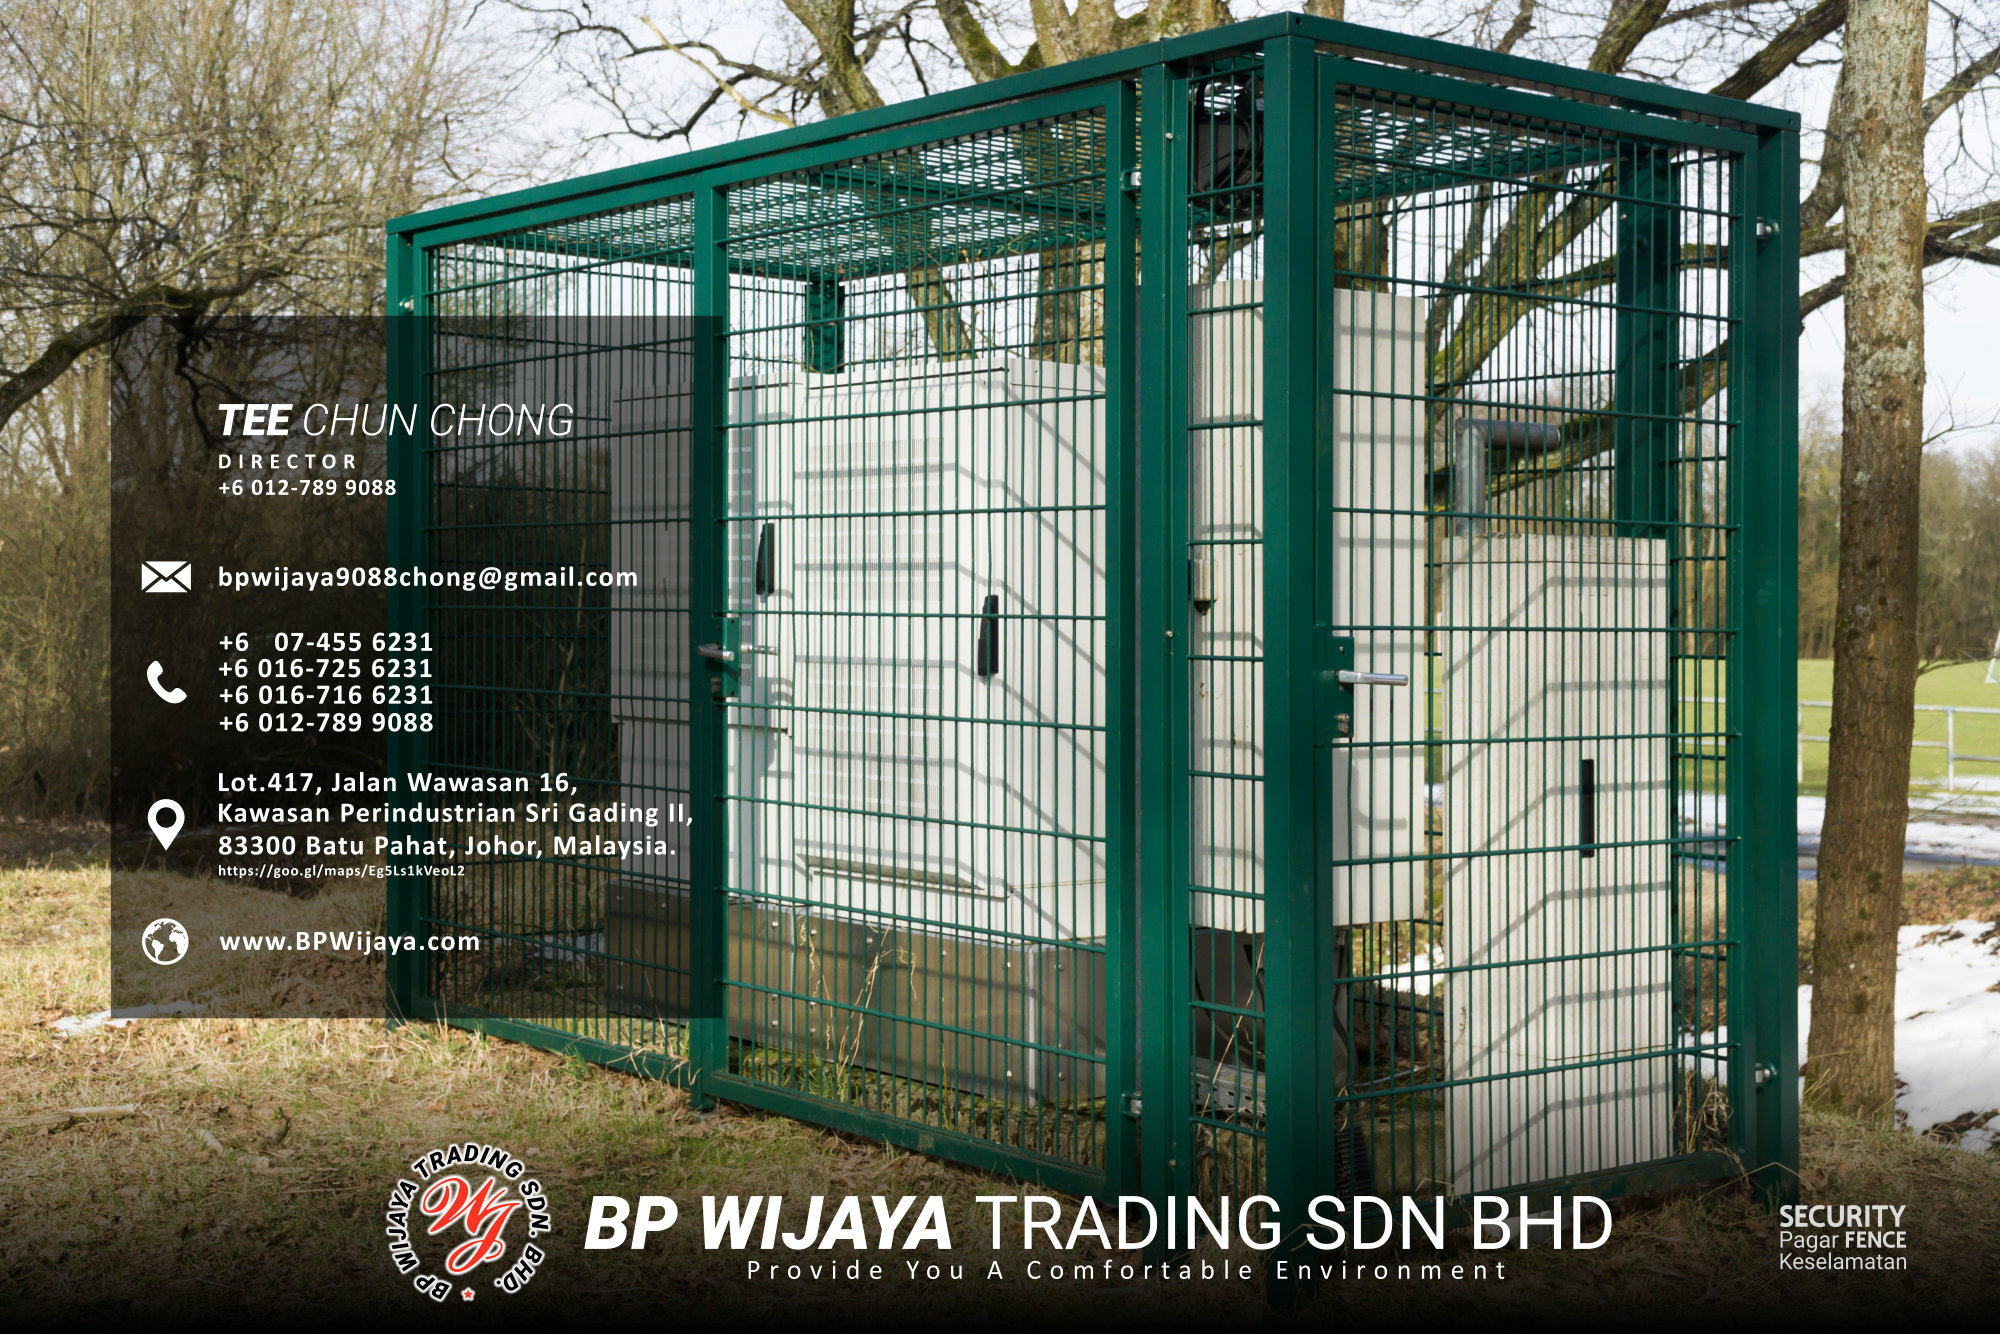 Kuala Lumpur Security Fence Supply we are manufacturer of security fence BP Wijaya Trading Sdn Bhd Safety Fence Building Materials for Housing Construction factory fence house beauty fence A03-018